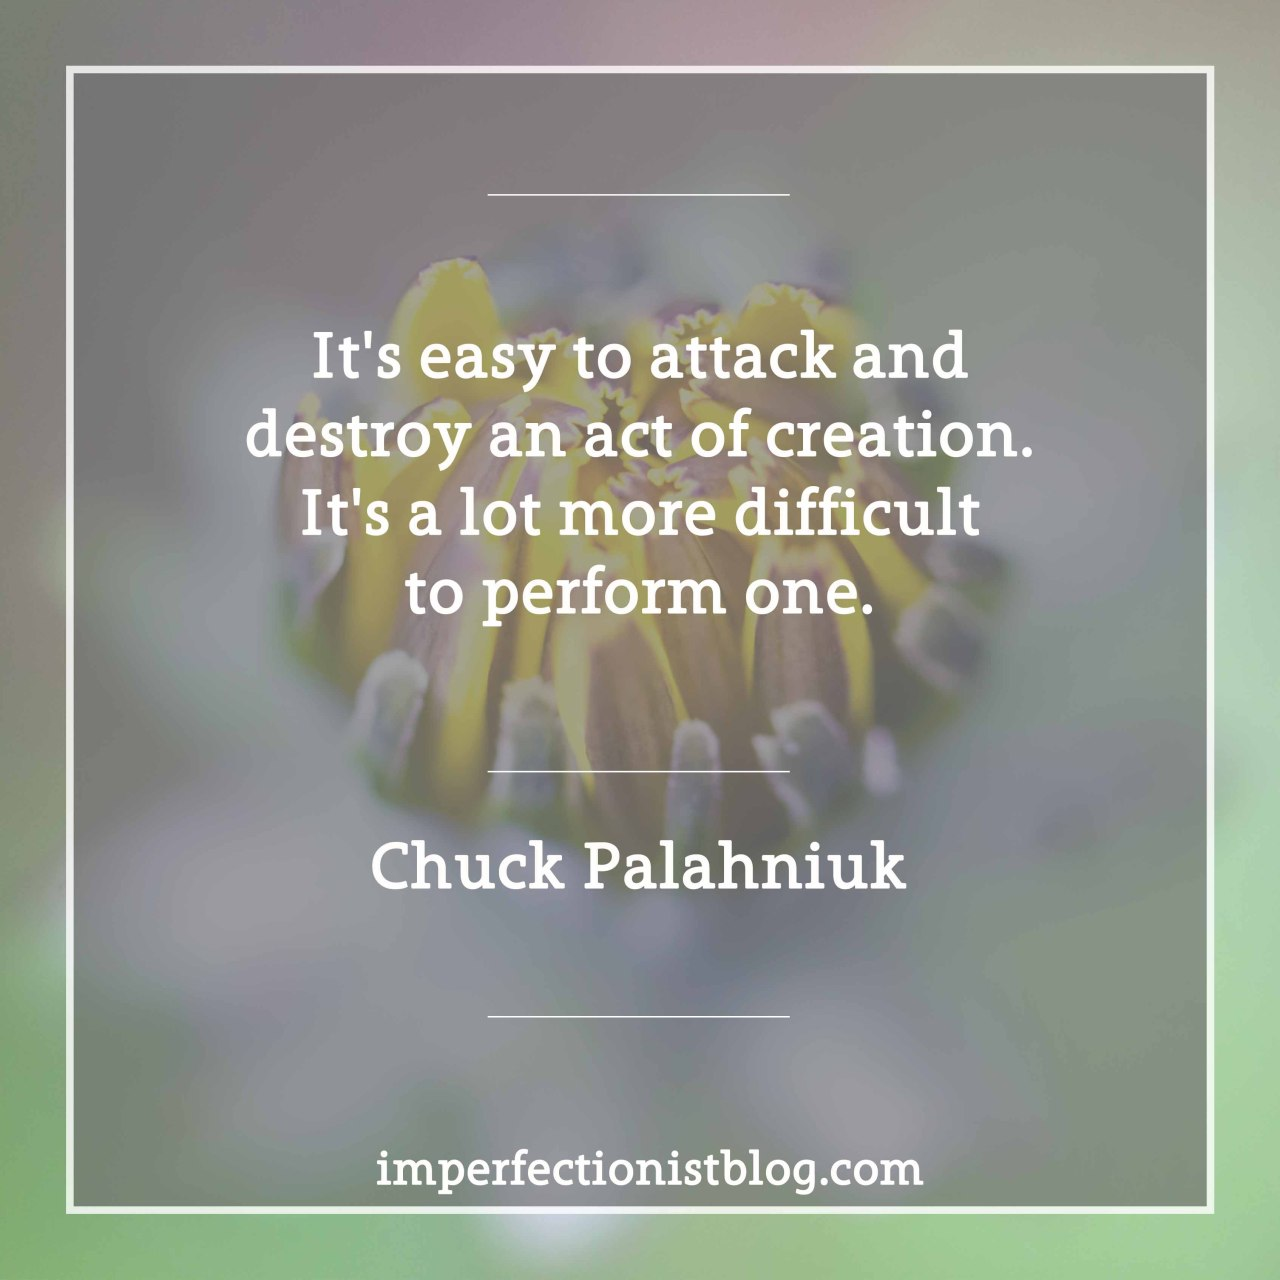 "#206 - ""It's easy to attack and destroy an act of creation. It's a lot more difficult to perform one."" -Chuck Palahniuk